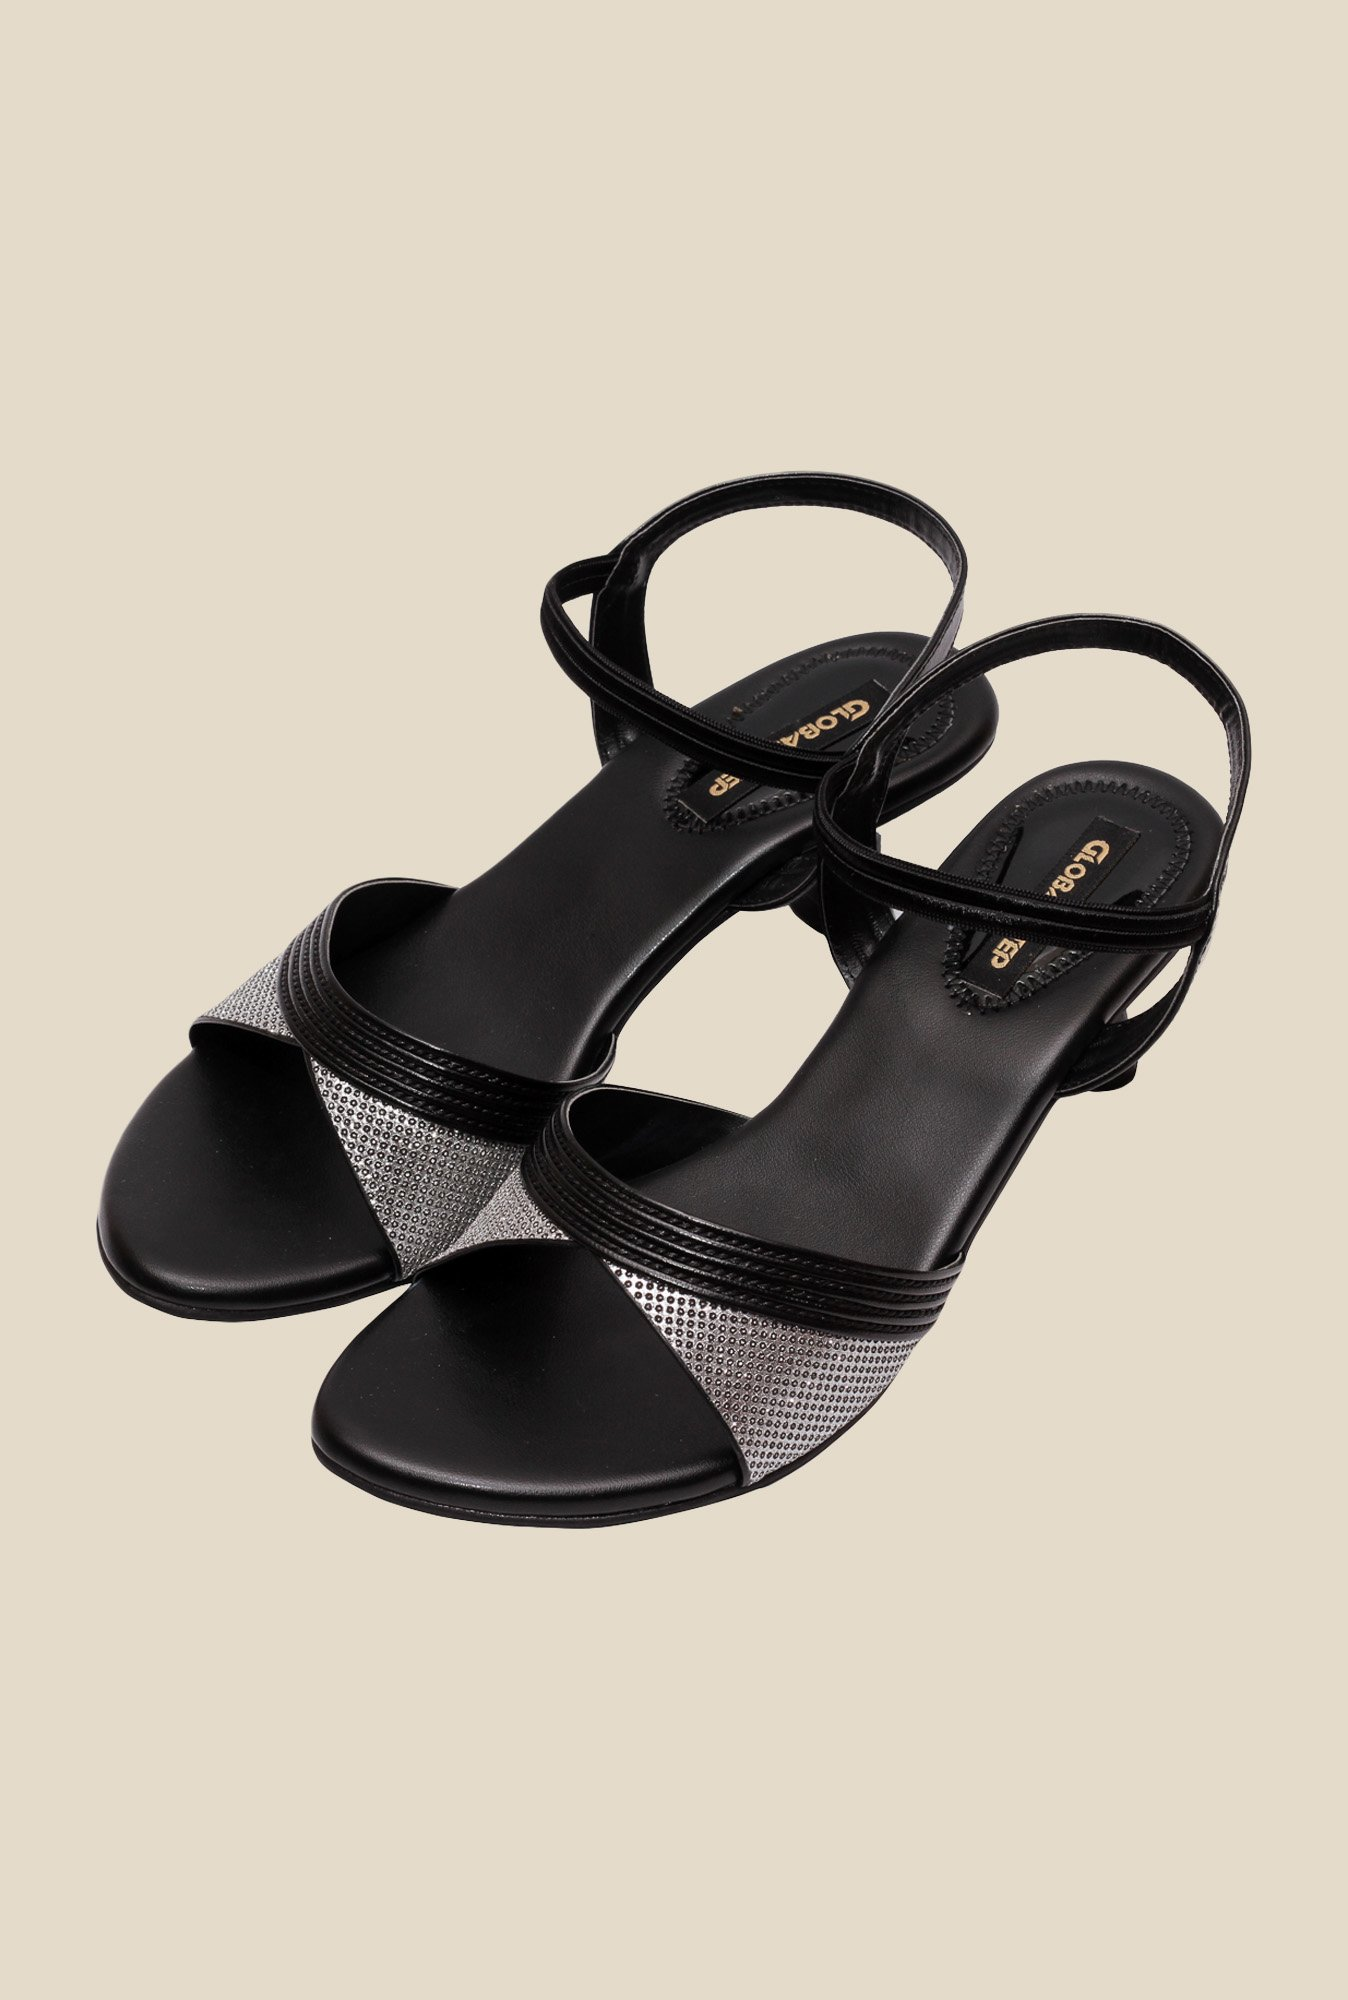 Global Step Black Sling Back Sandals